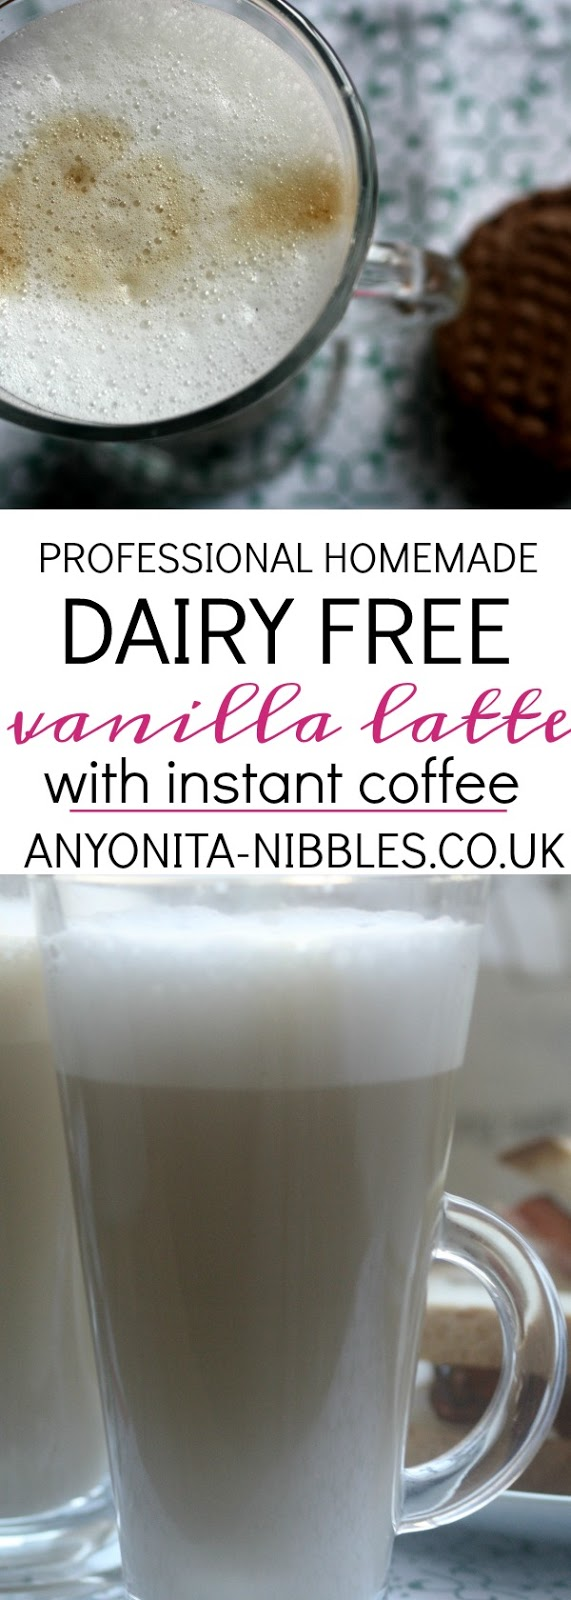 Professional Homemade Dairy Free Vanilla Latte with Instant Coffee